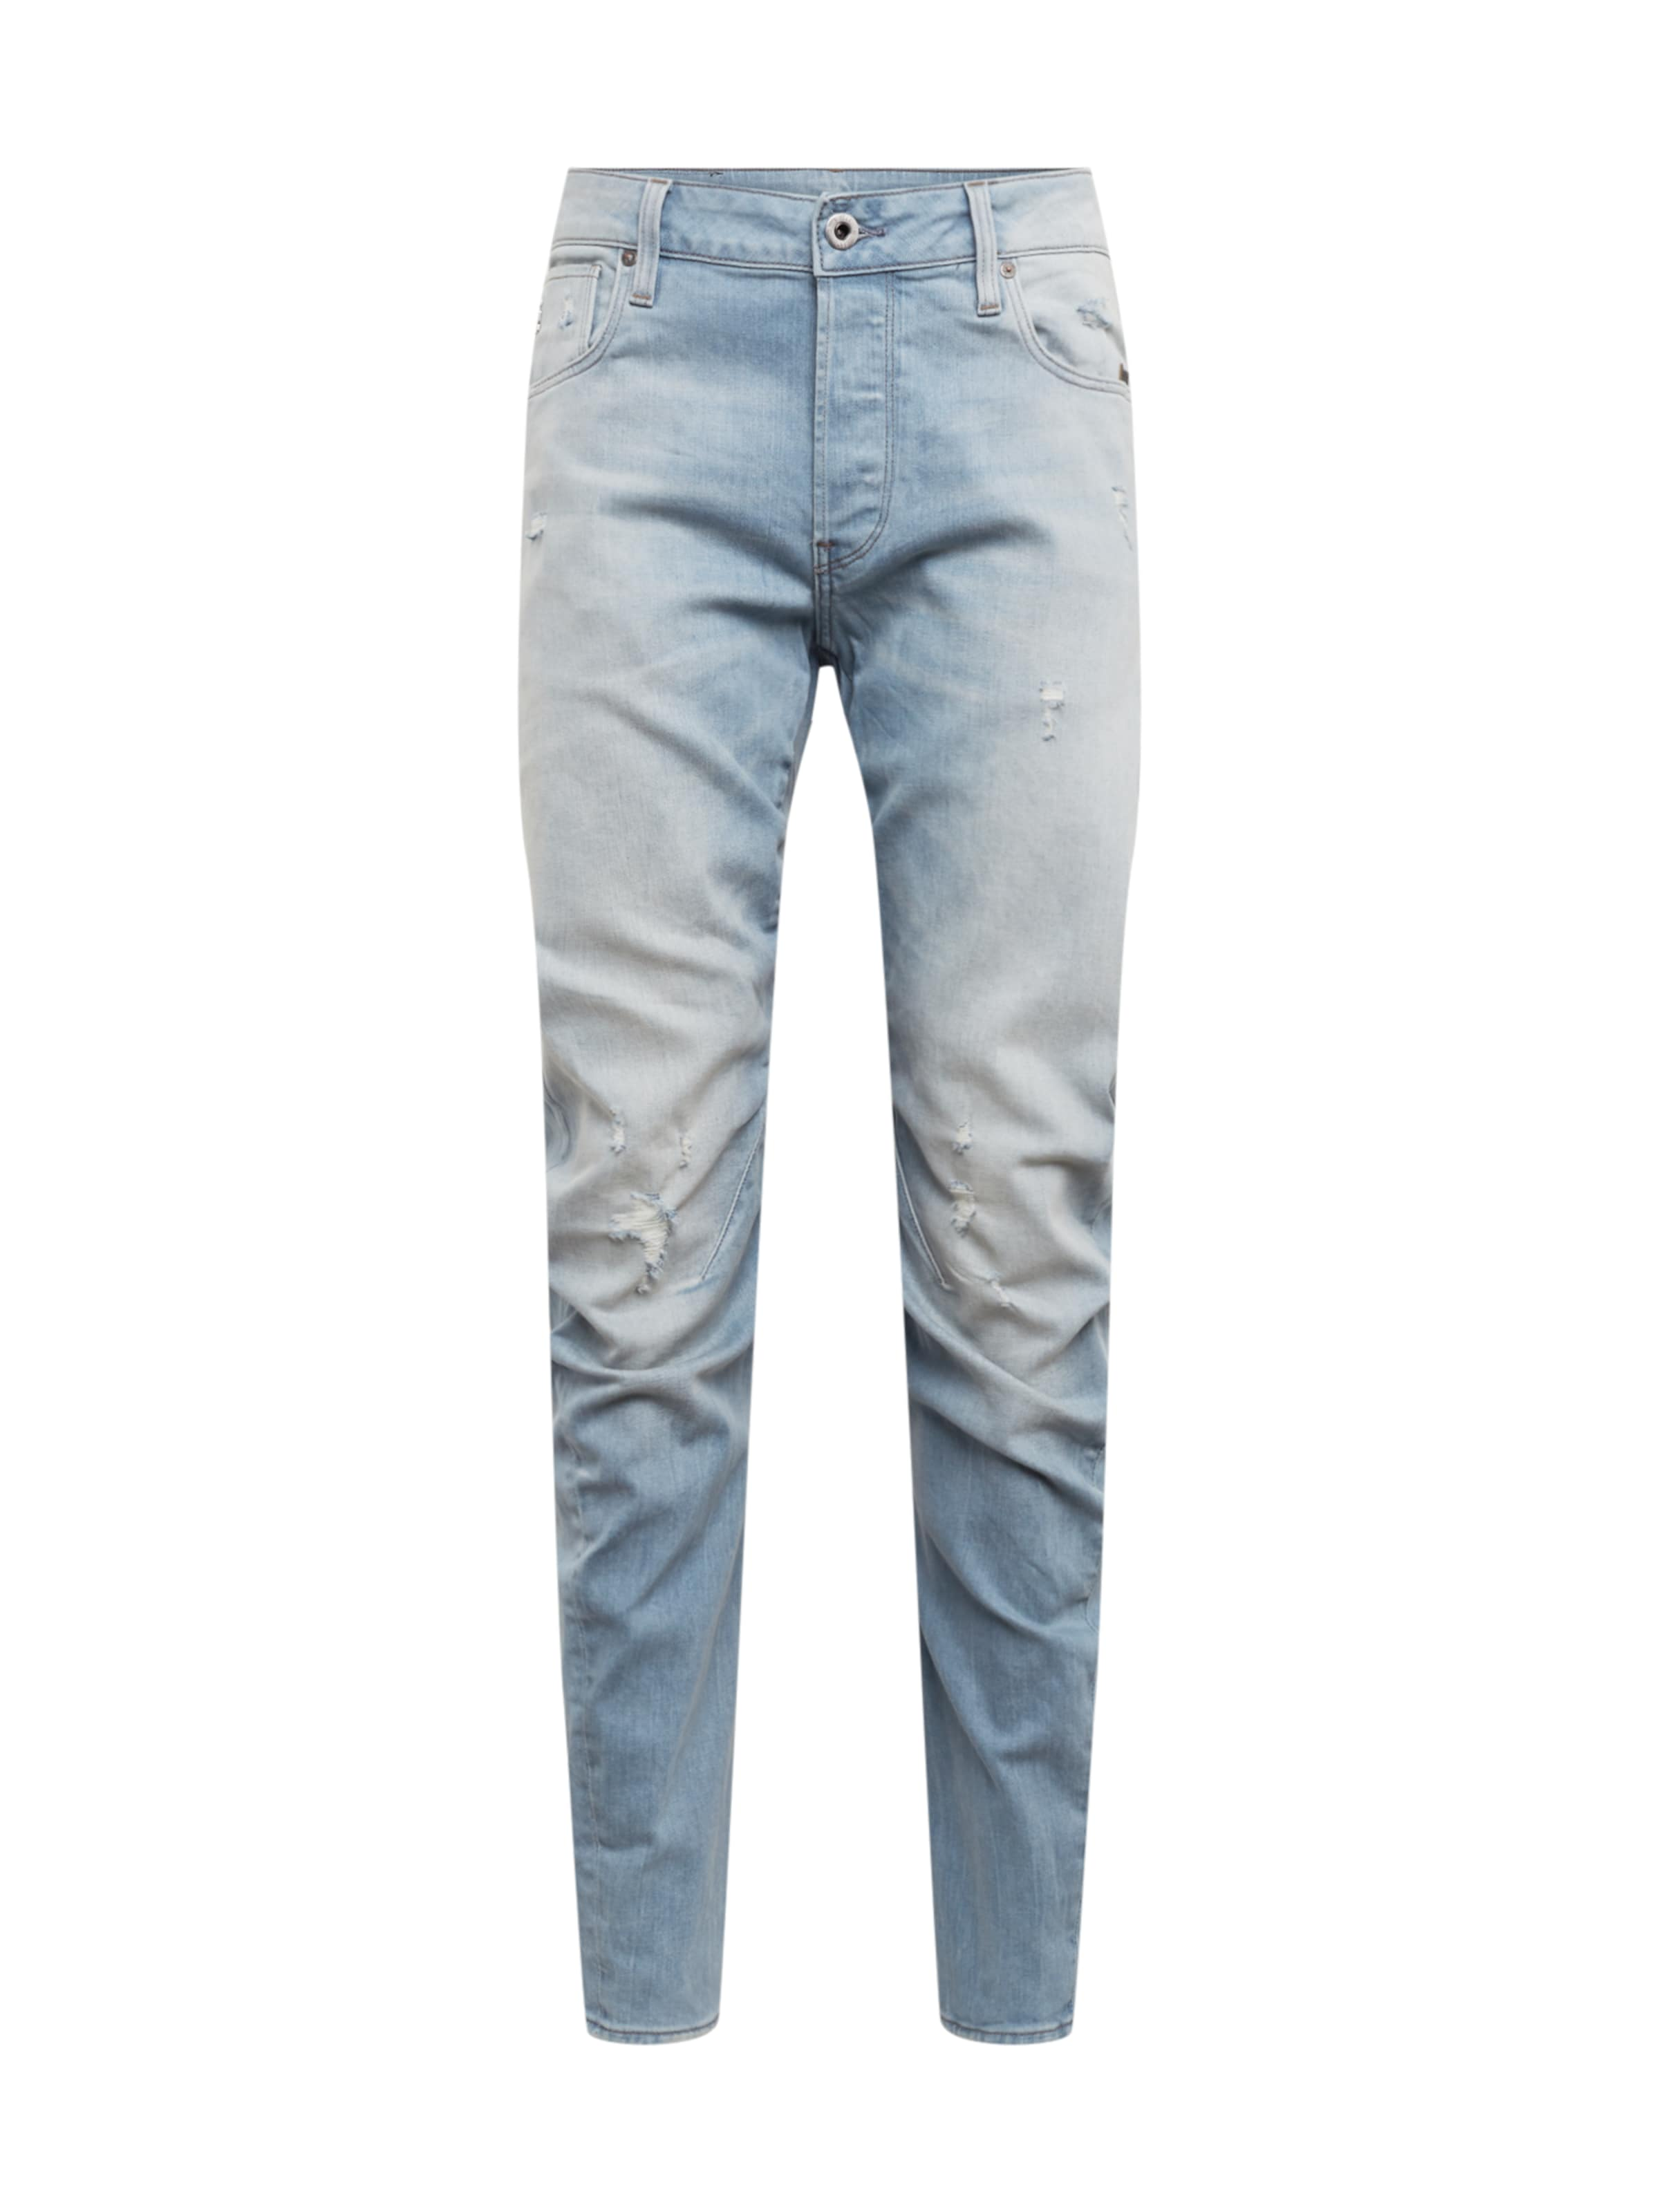 G Denim Jean En star 'arc Slim' Bleu Raw 3d 354RLqAj